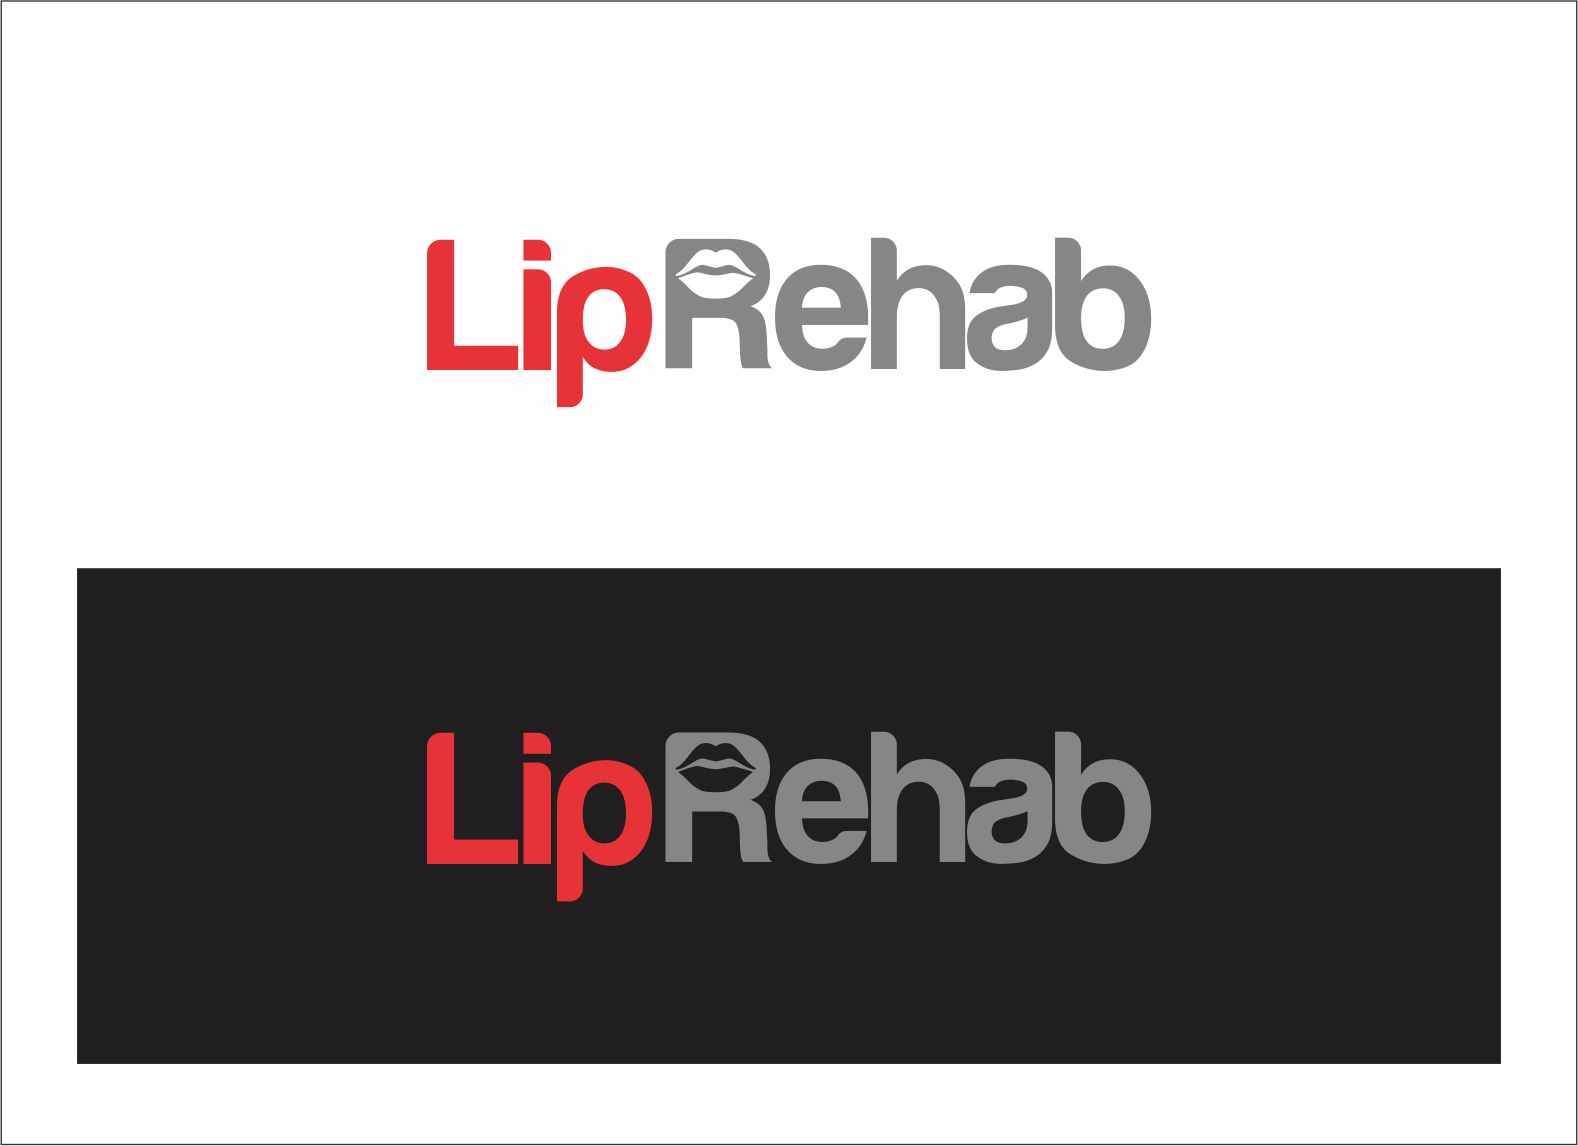 Logo Design by fathdesigner - Entry No. 240 in the Logo Design Contest Creative Logo Design for Lip Rehab.